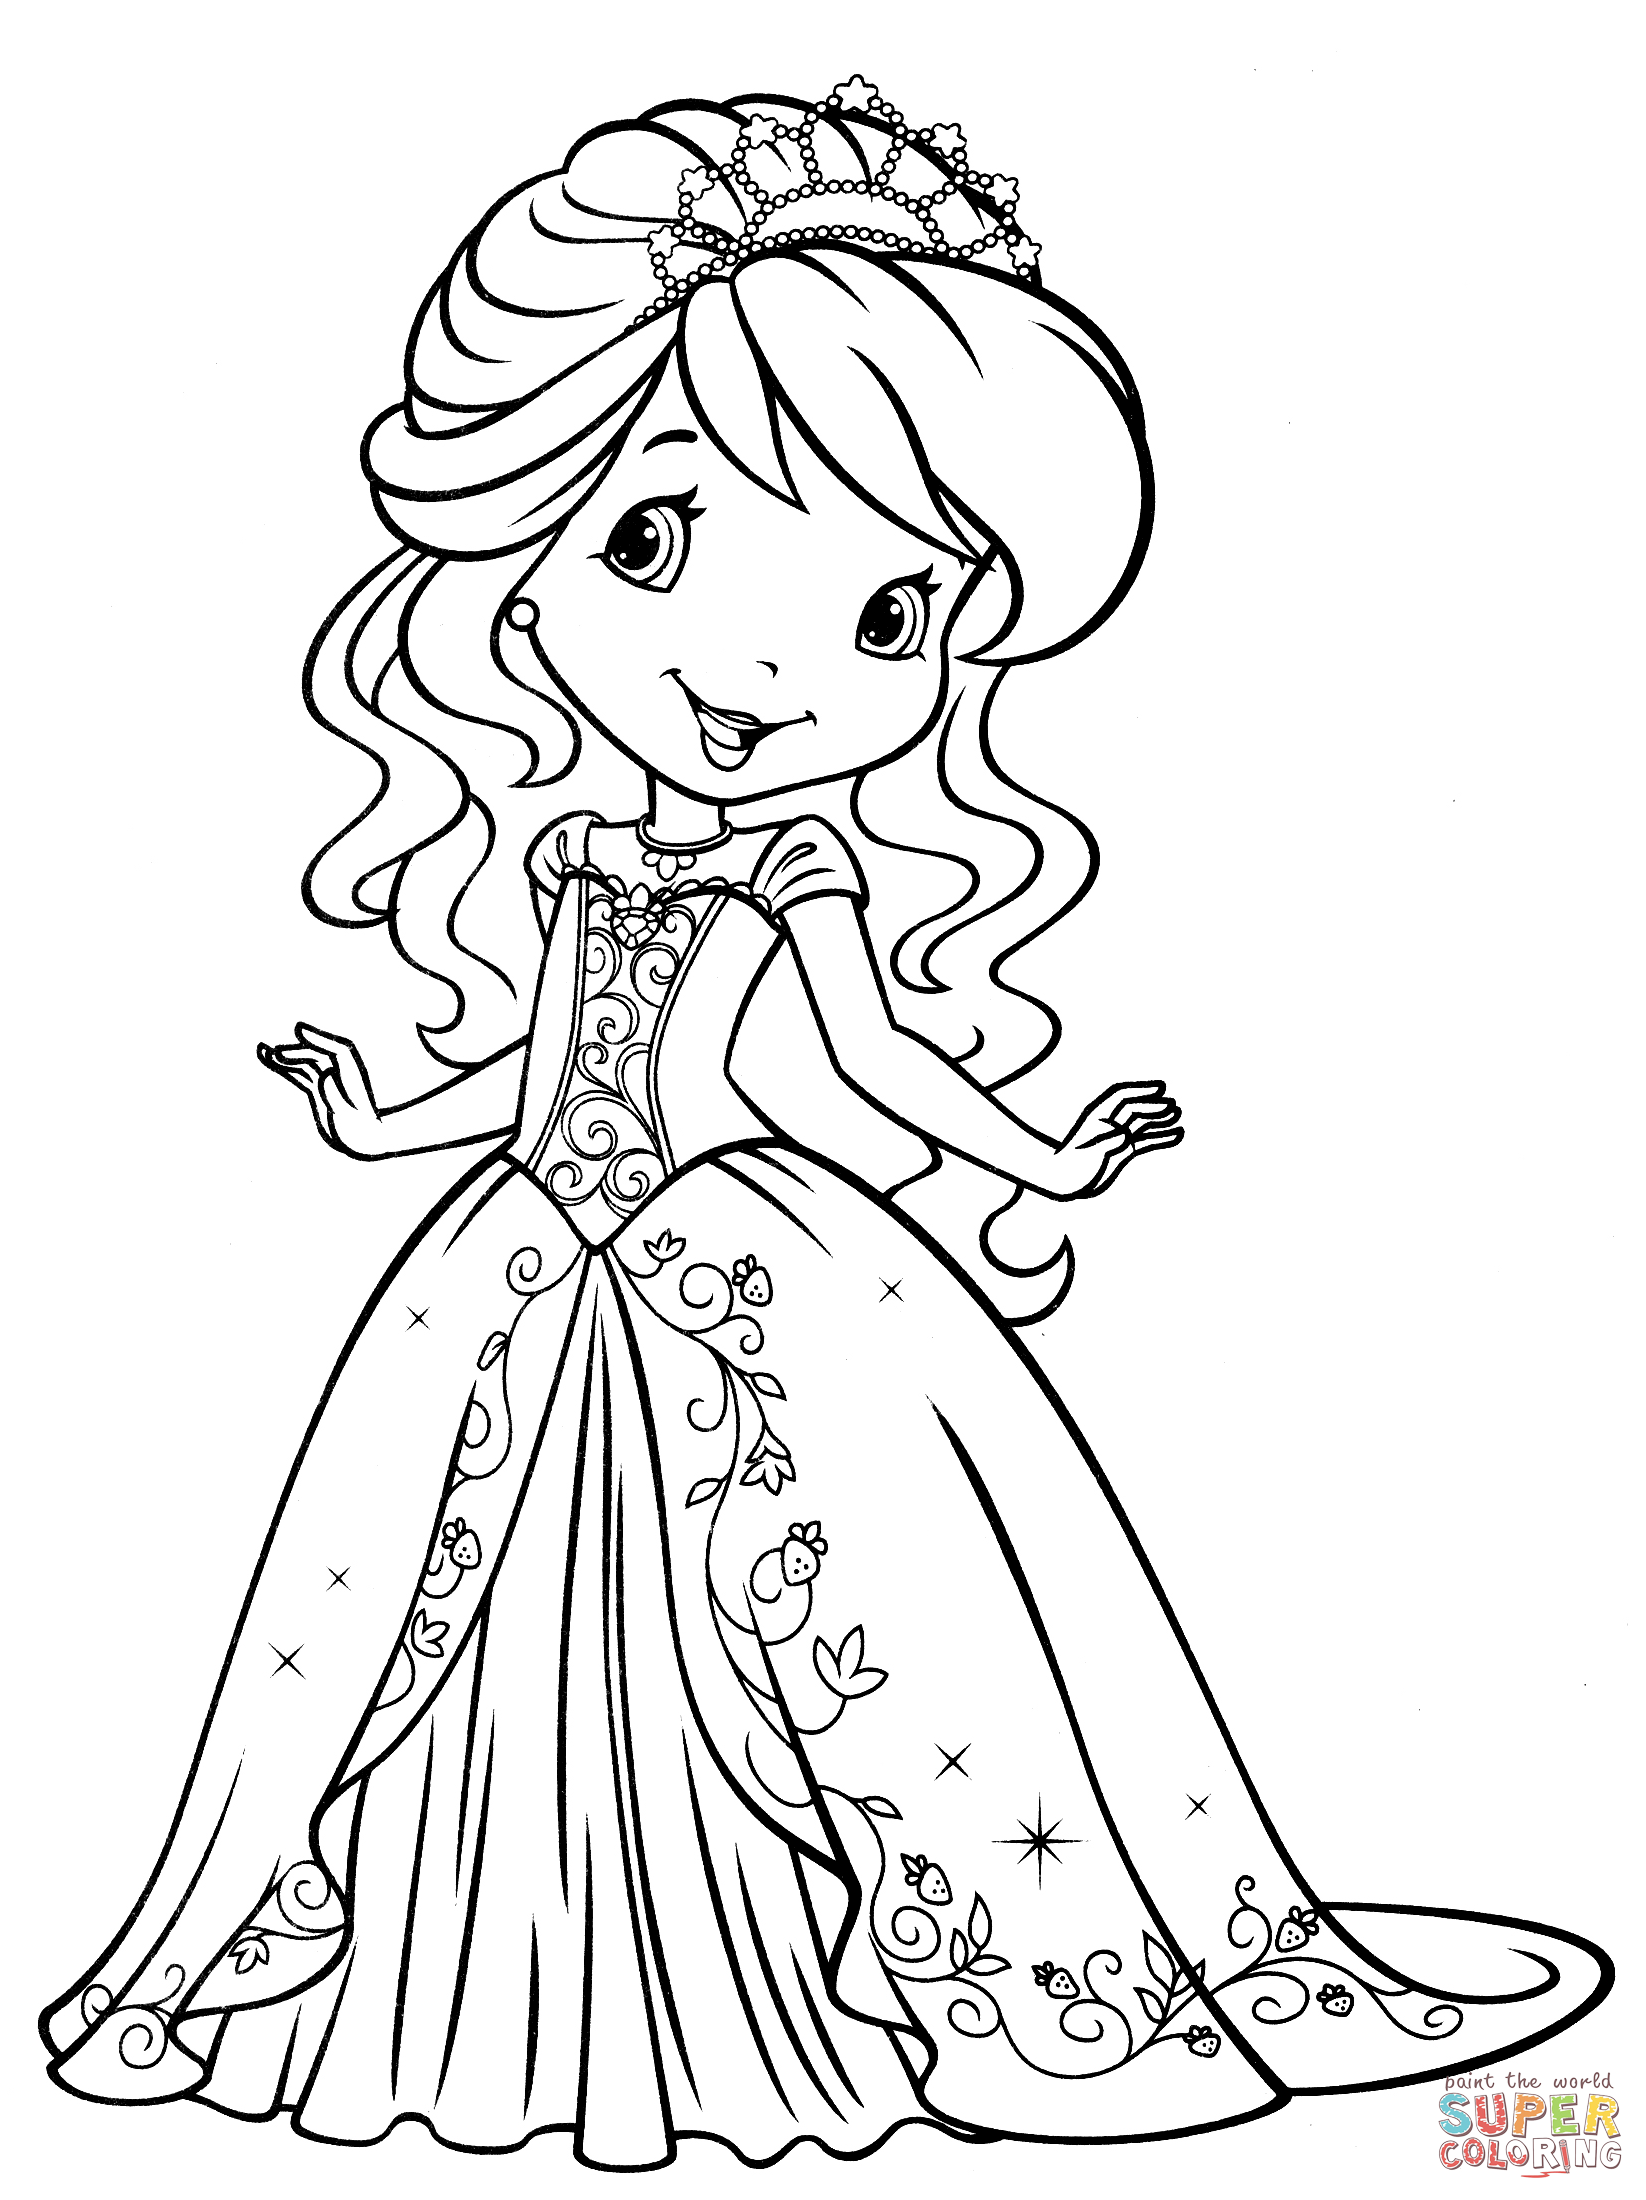 Strawberry Shortcake Coloring Page Free Printable Coloring Pages